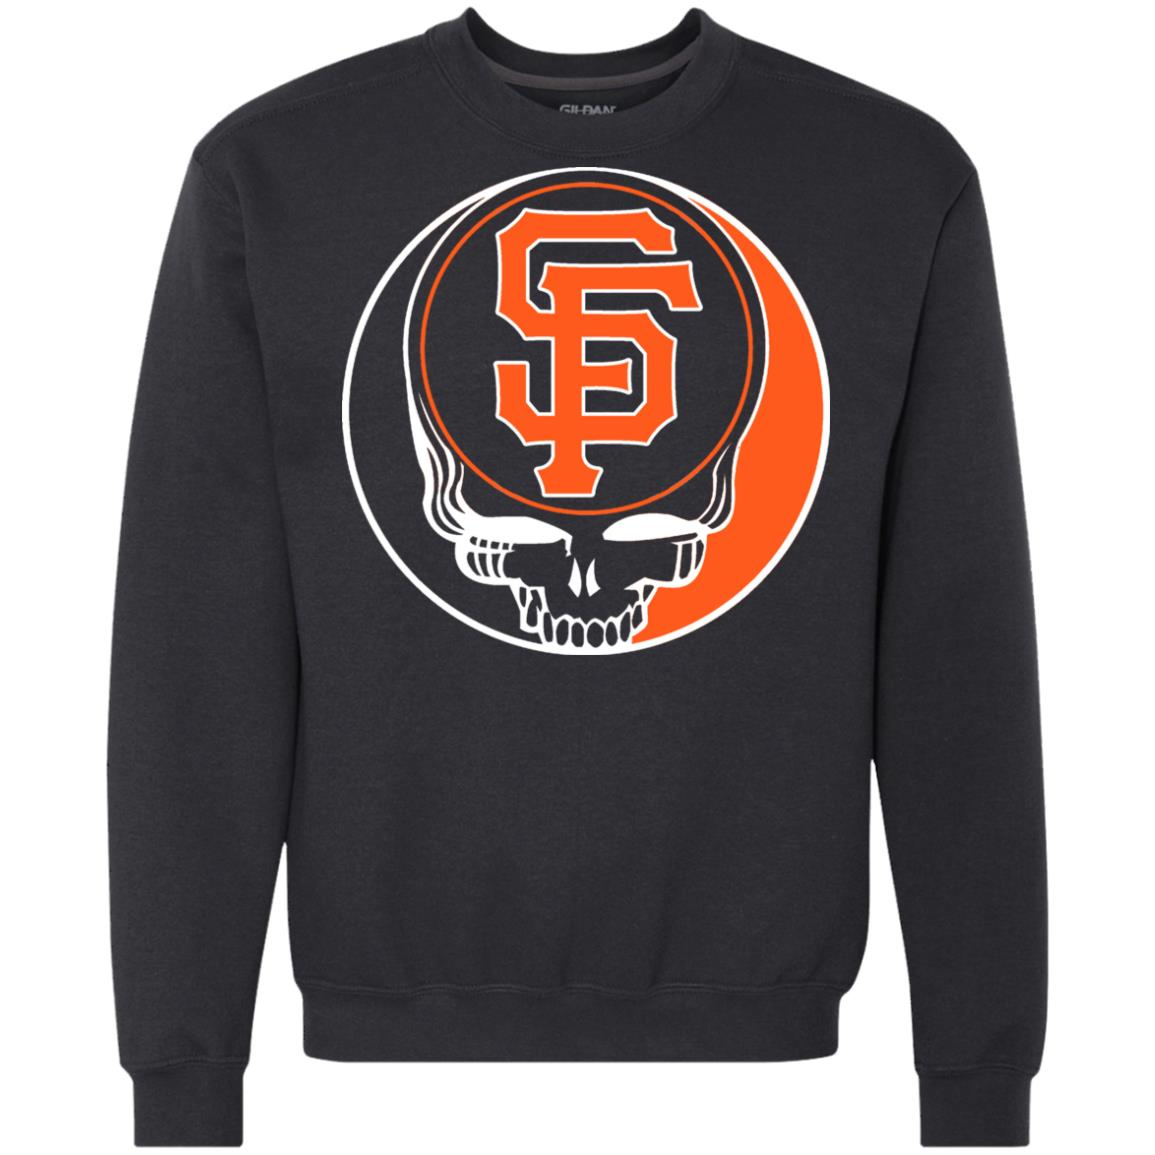 save off 0b78e 33c72 Grateful Dead Steal Your Face San Francisco Giants T shirts Hoodies,  Sweatshirts